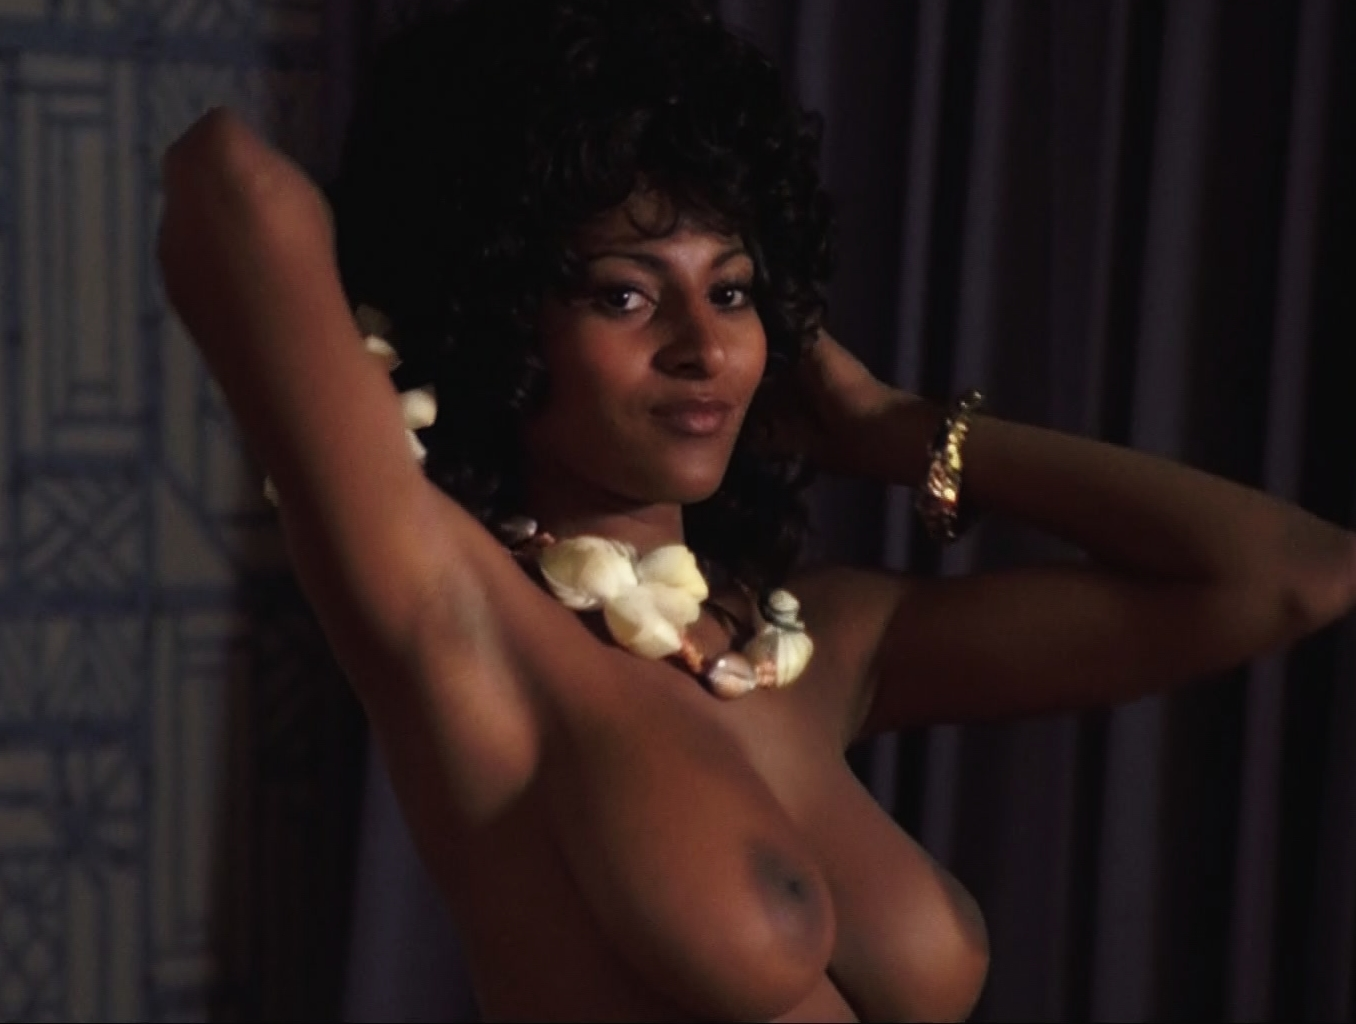 Pam grier nude movie clip, free throat job galleries